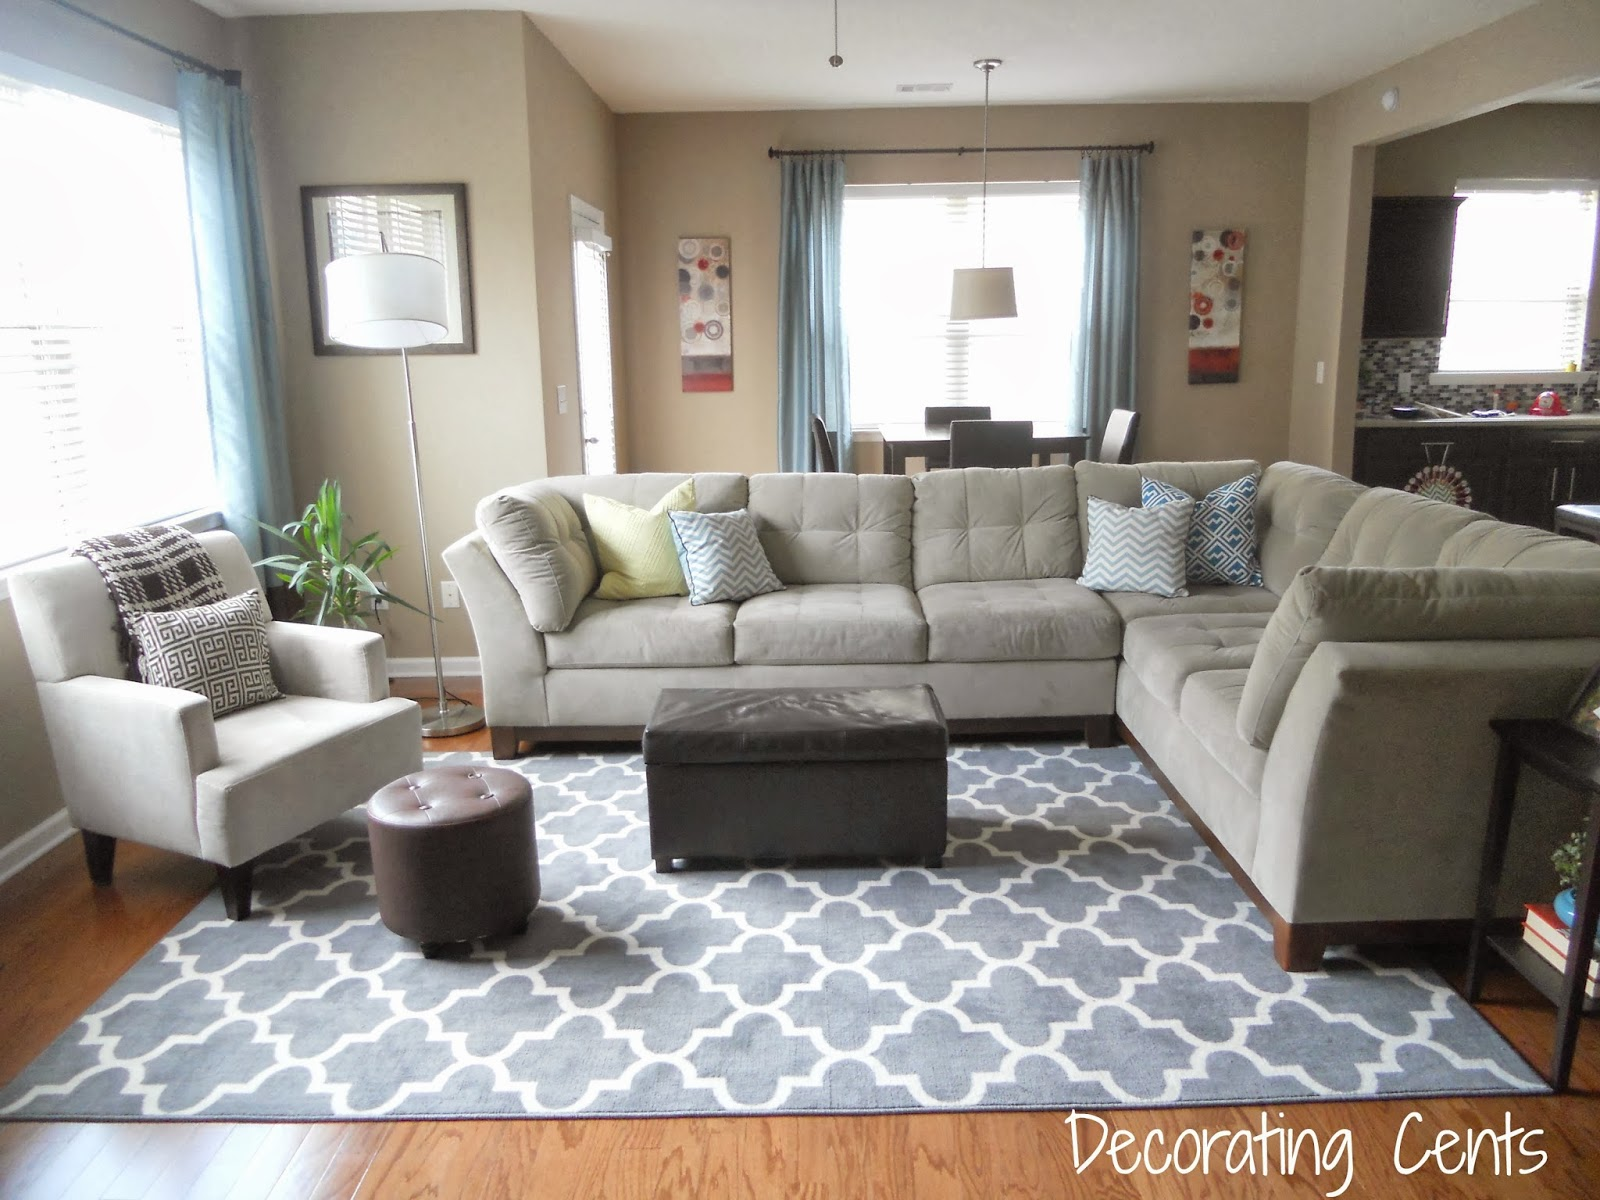 decorating cents new family room rug. Black Bedroom Furniture Sets. Home Design Ideas